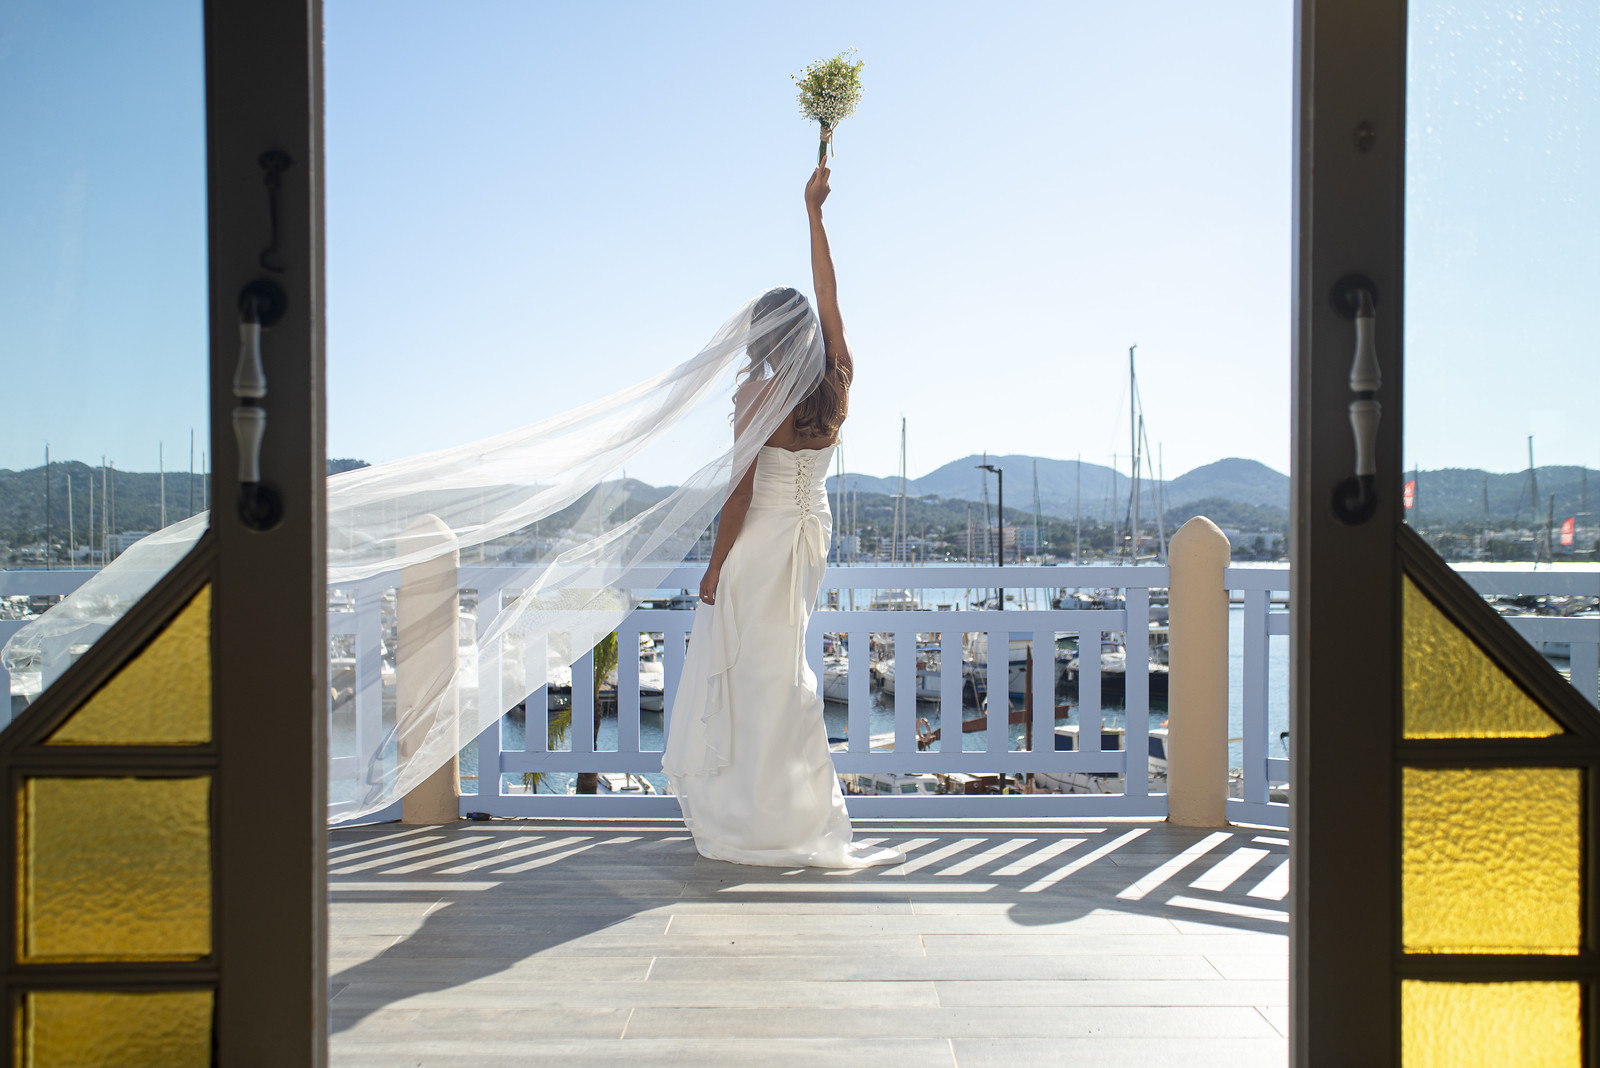 https://www.white-ibiza.com/wp-content/uploads/2020/03/white-ibiza-wedding-venue-villa-mercedes-2019-01.jpg